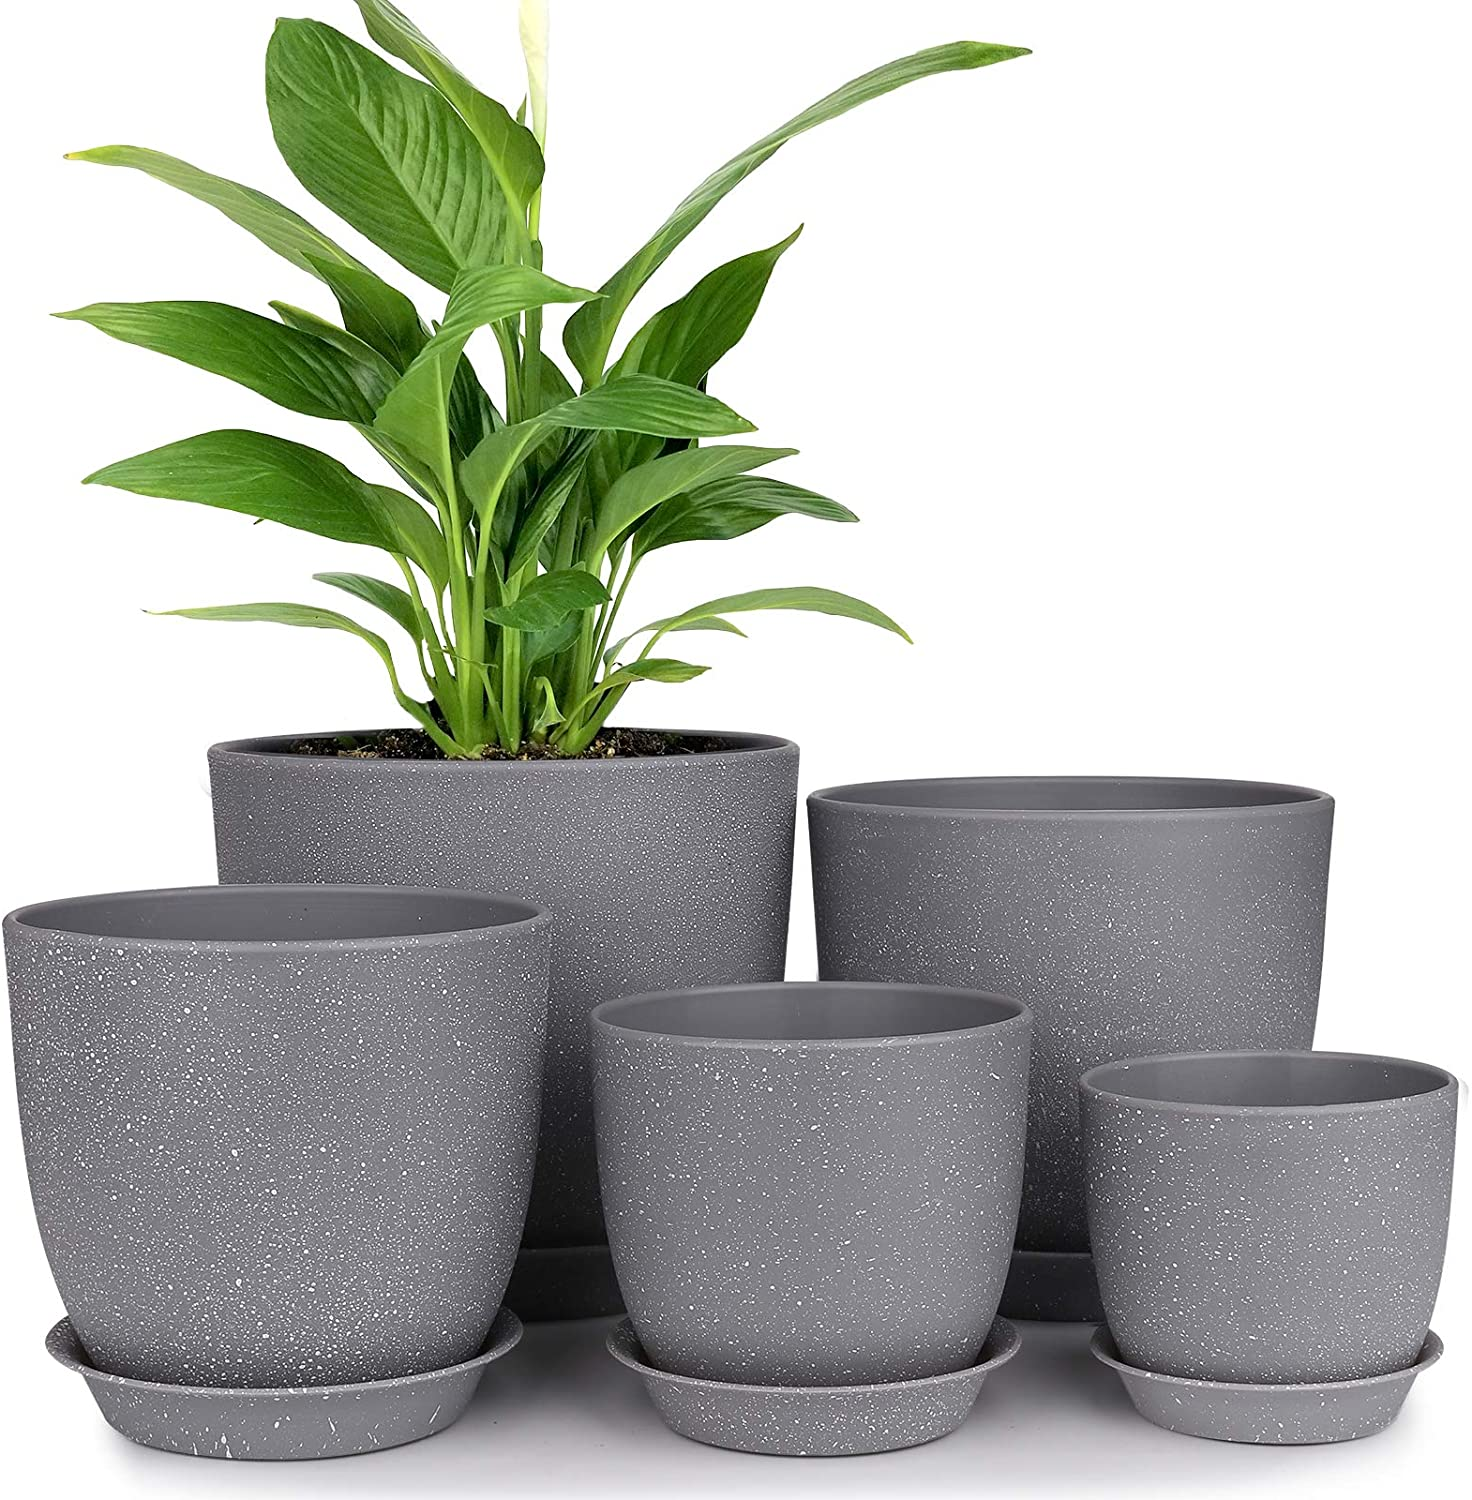 Plastic Planter, HOMENOTE 7/6/5.5/4.8/4.5 Inch Flower Pot Indoor Modern Decorative Plant Pots with Drain Hole and Saucer for All House Plants, Succulents, Flowers, Speckled Gray: Kitchen & Dining